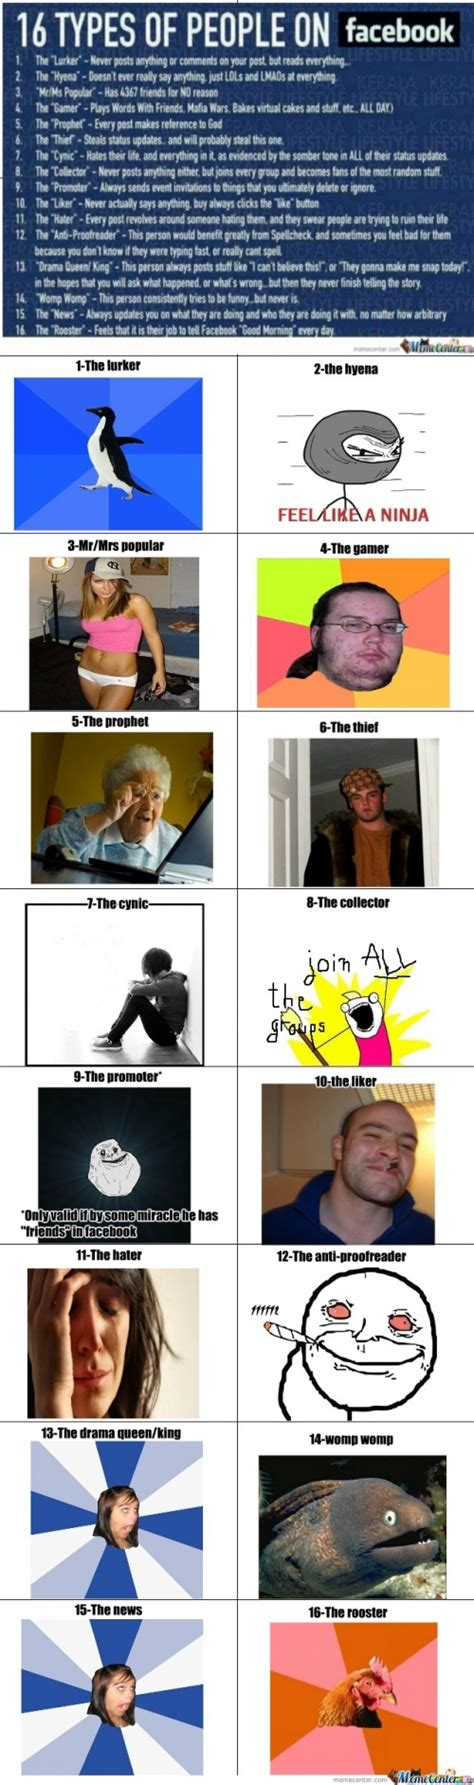 Types Of Memes - facebook memes type of people memes best collection of funny facebook memes type of people pictures